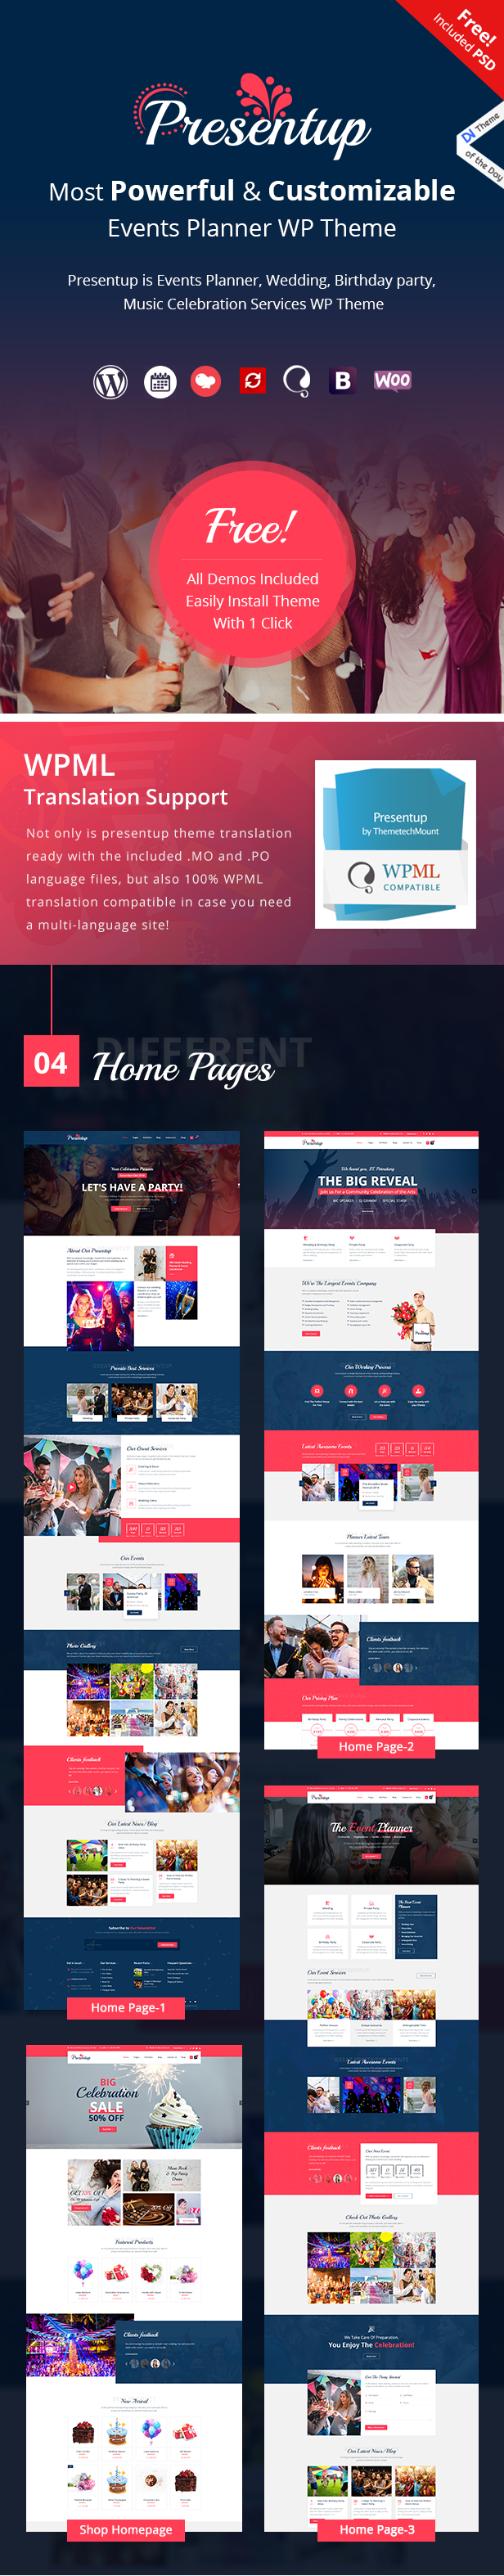 Presentup WordPress Theme